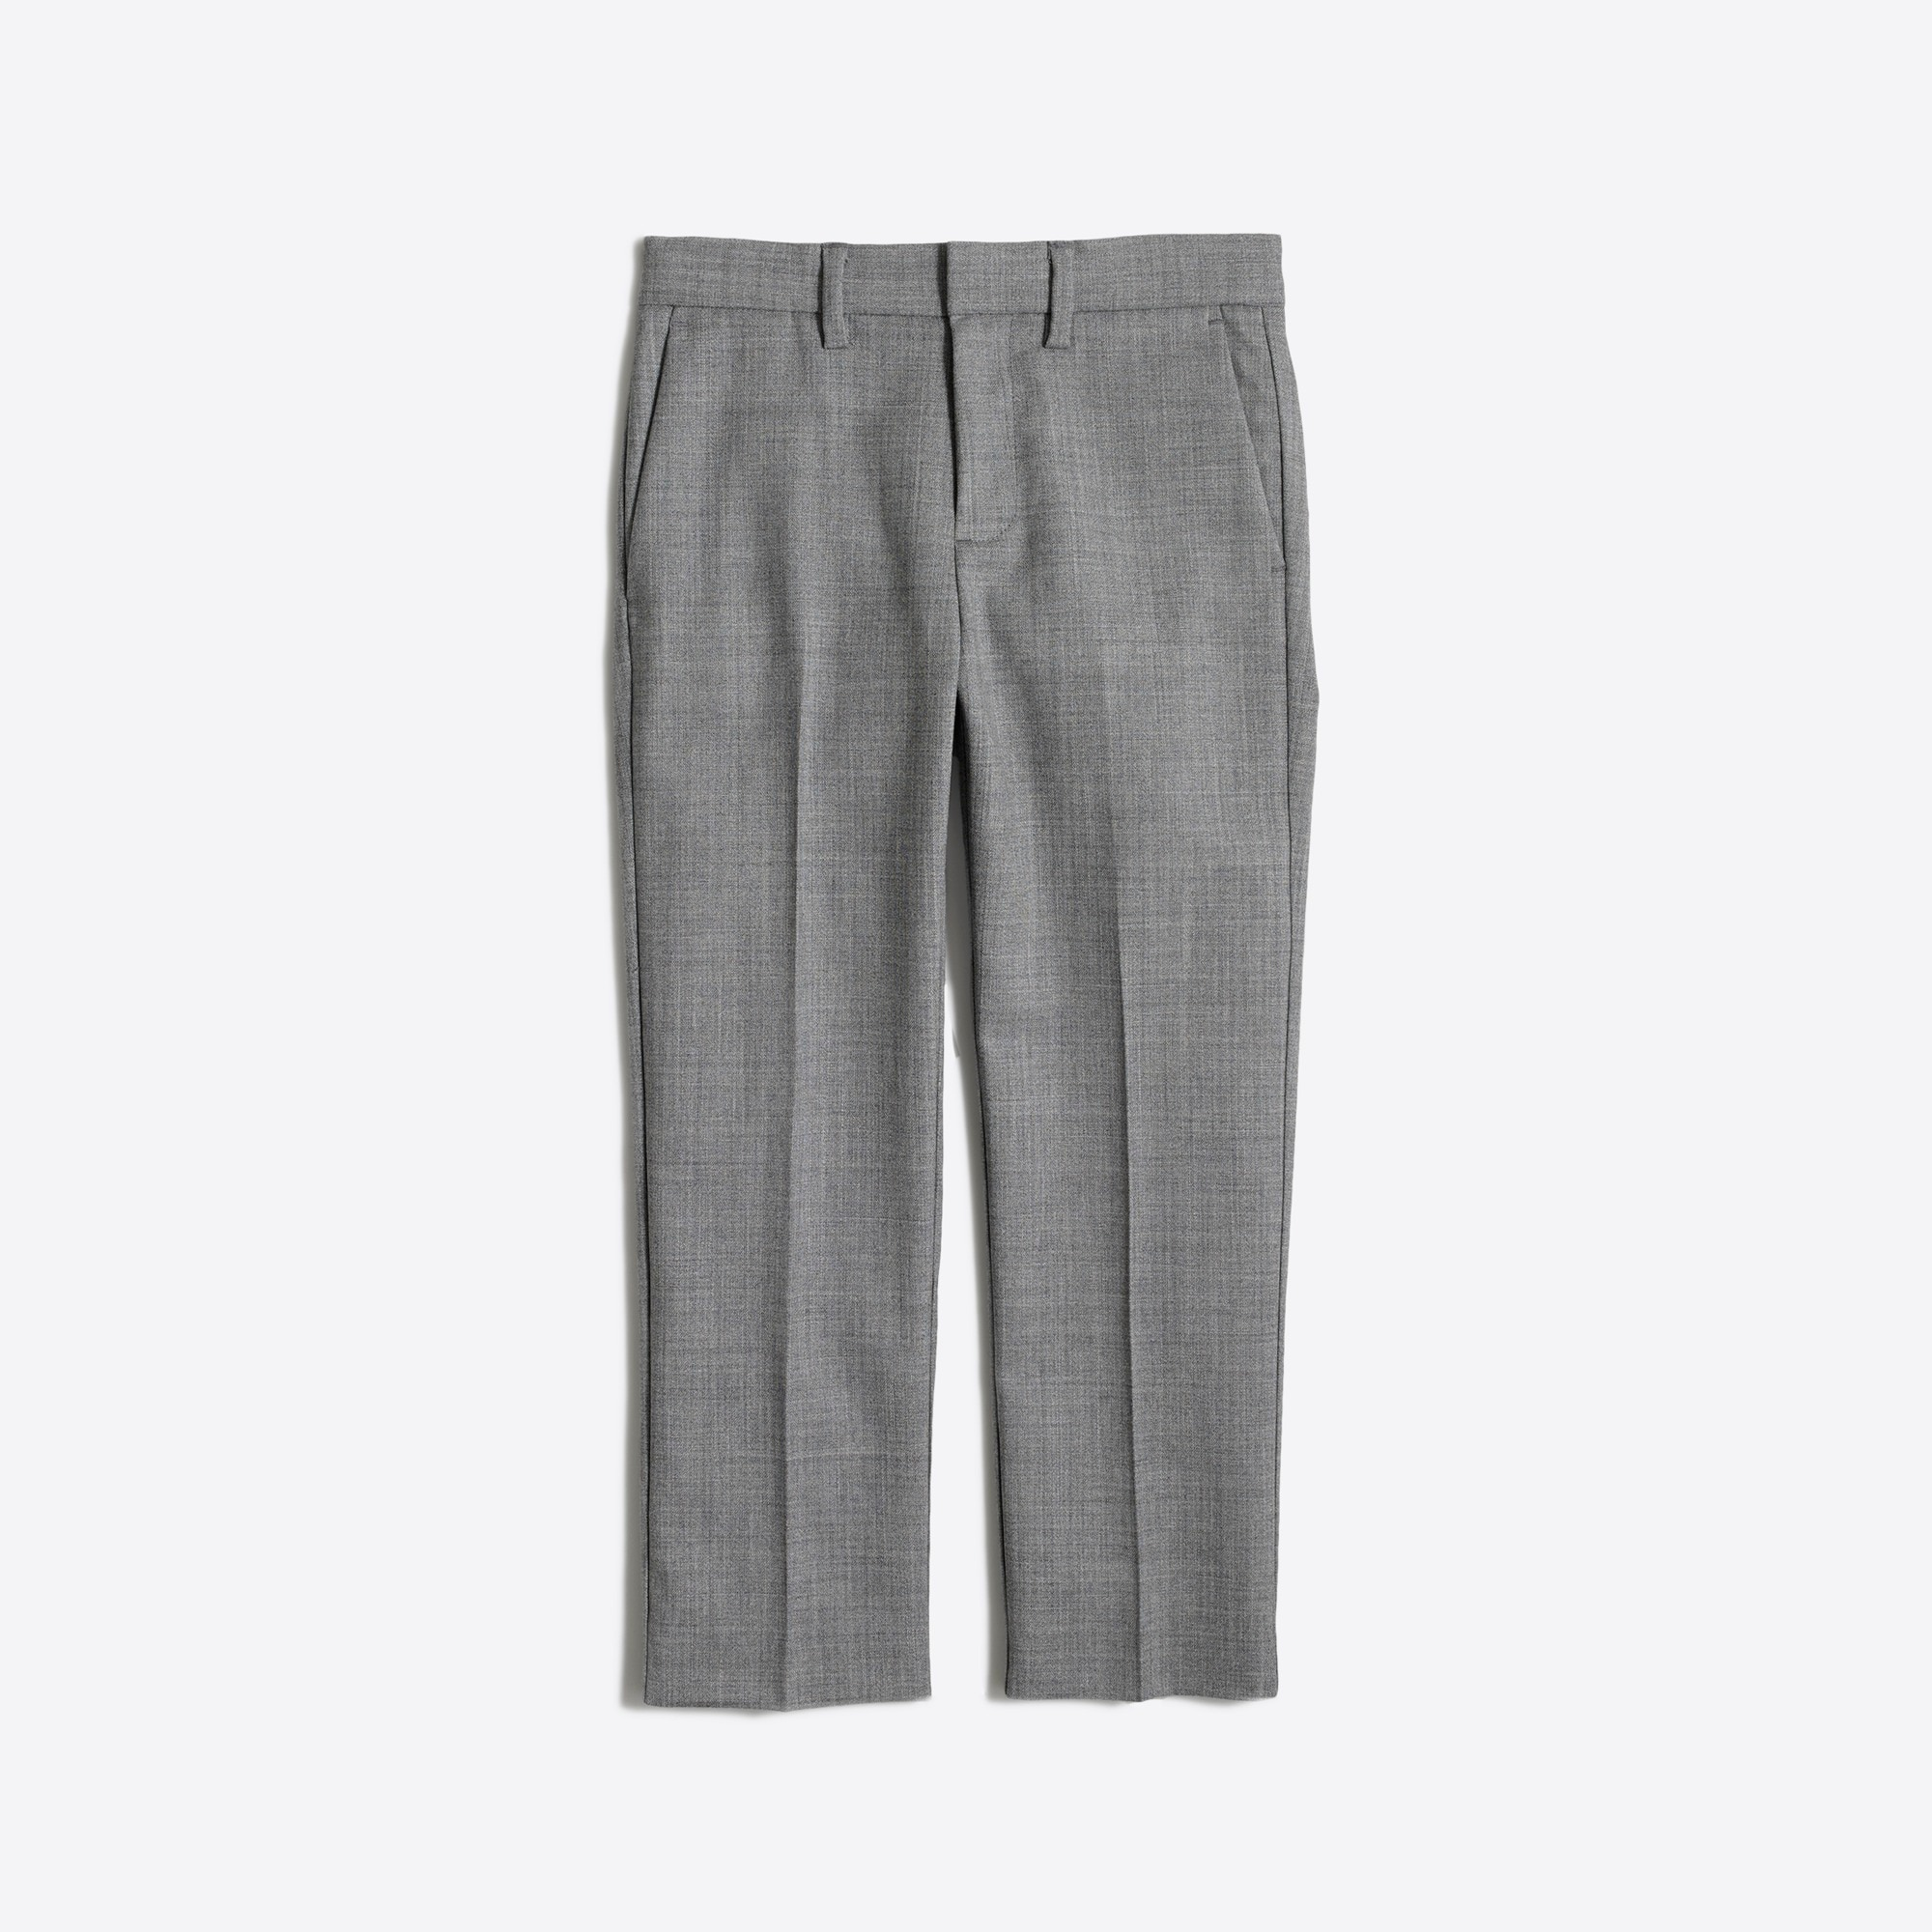 factory boys Boys' Thompson Voyager suit pant